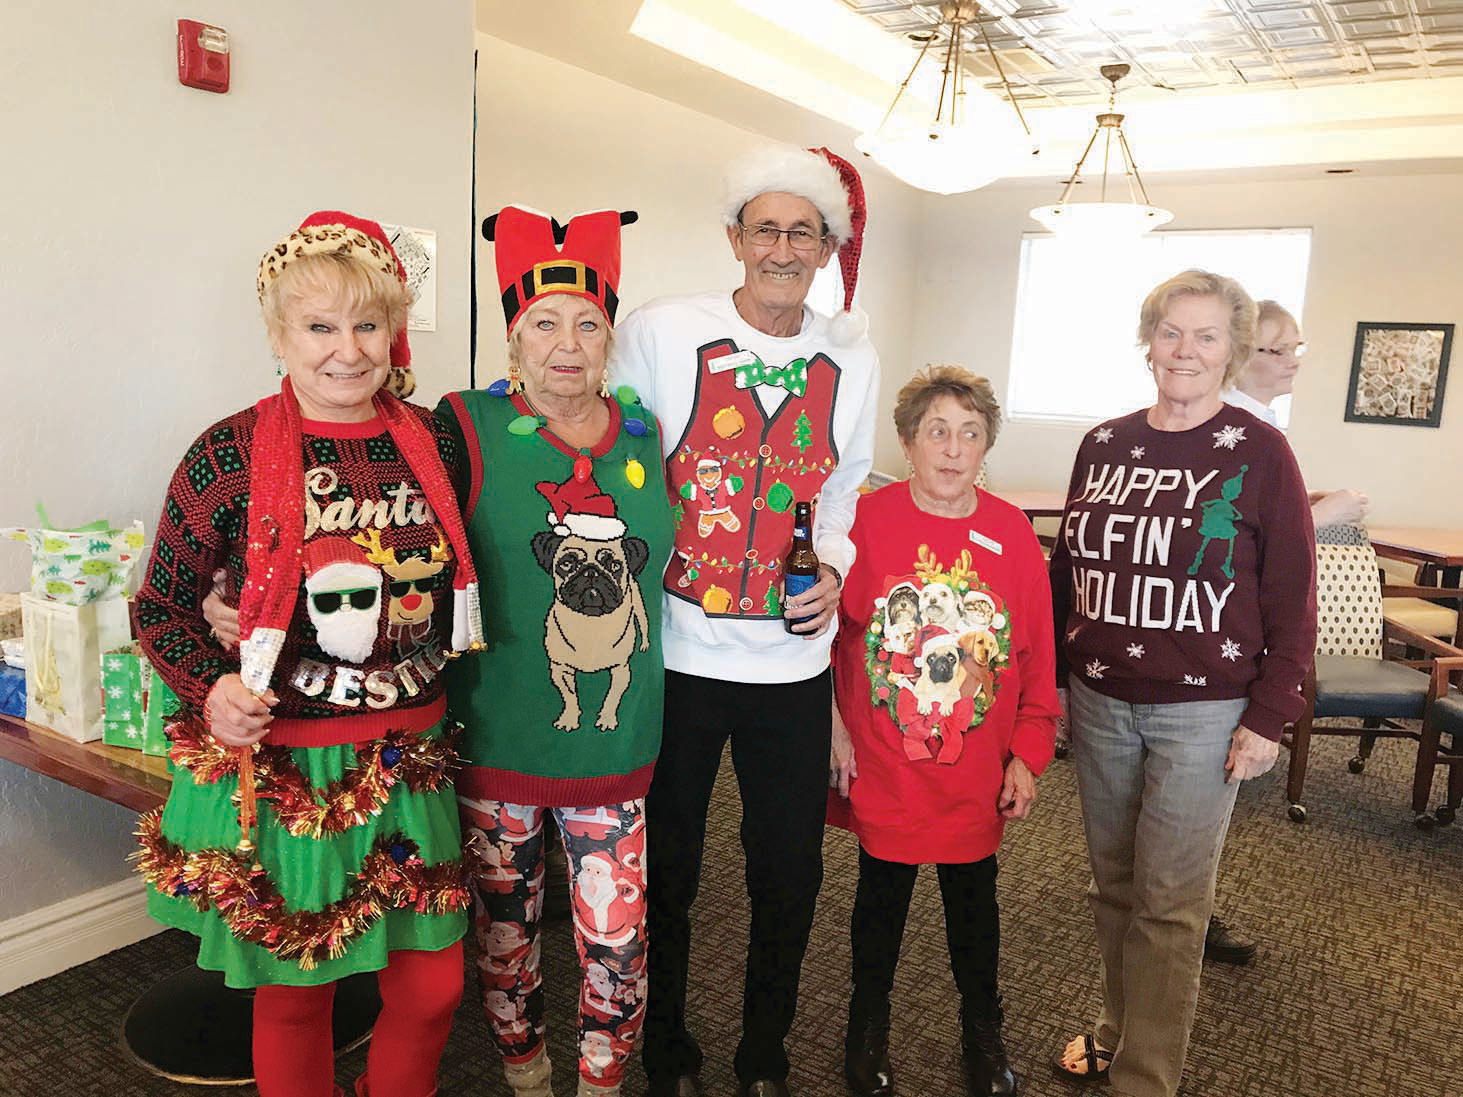 Fun times and memories at Cheers' 2019 Christmas party